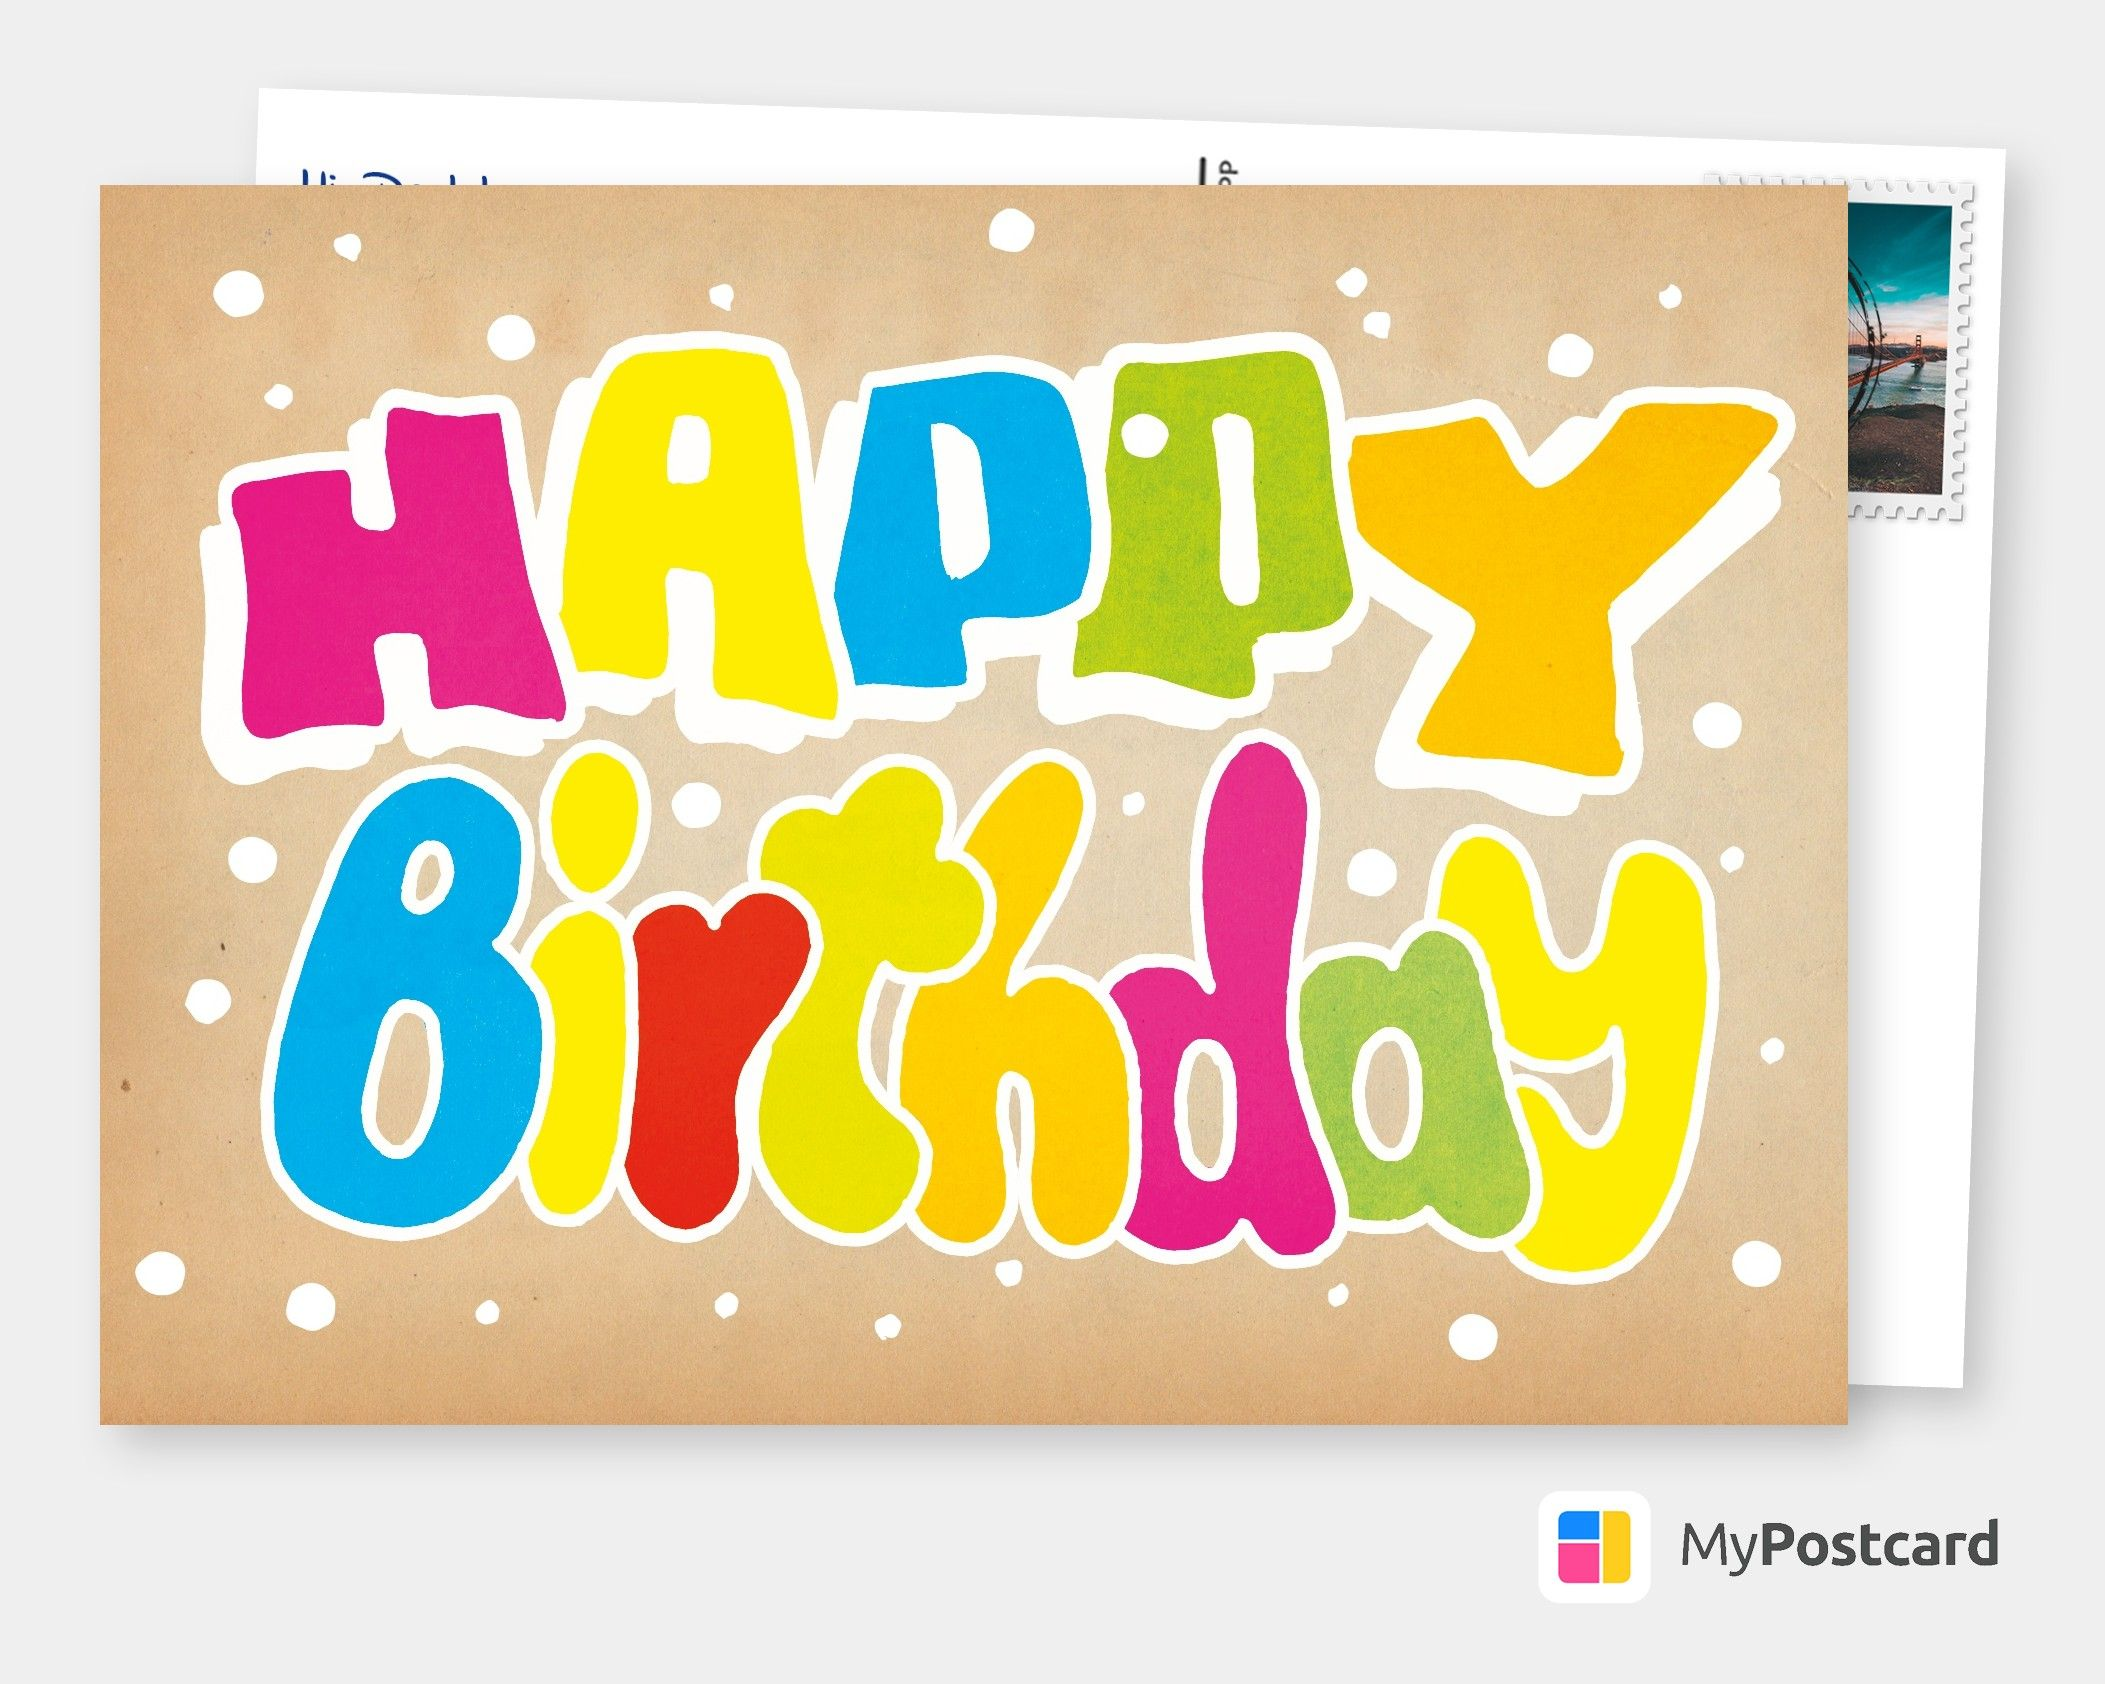 Make Your Own Birthday Cards Online Free Printable Templates Printed Mailed For You Photo Cards Postcards Photo Greeting Cards Online Printed Free Birthday Card